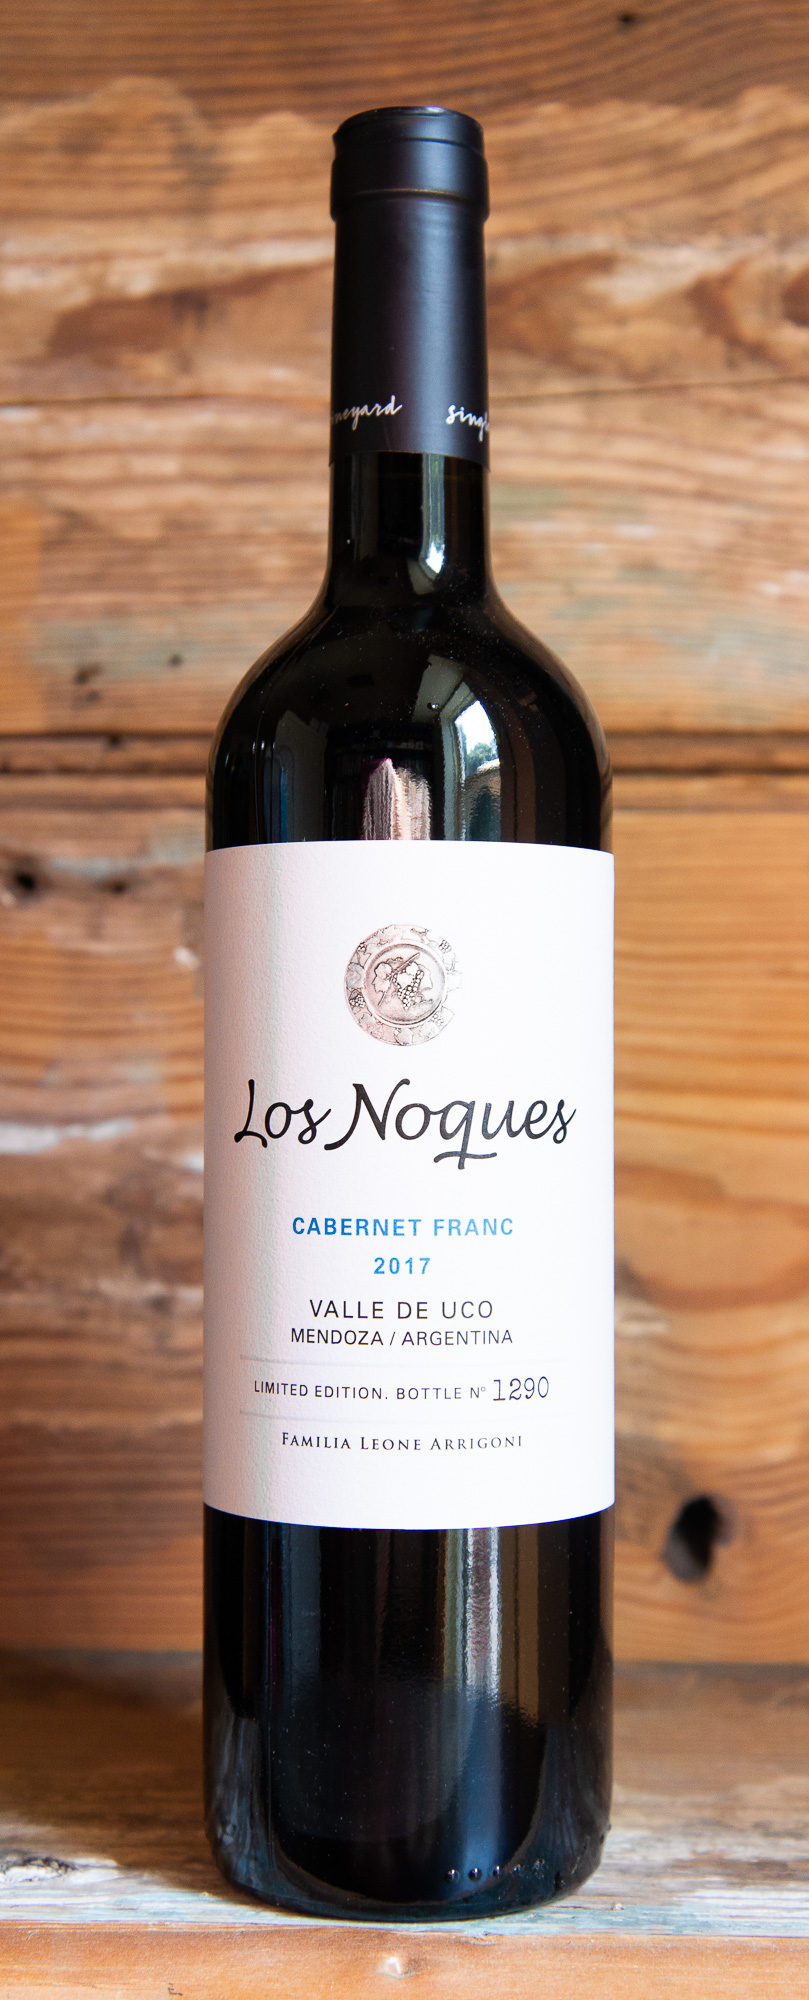 Los Noques Cabernet Franc Reserve 2018 - Origin: ArgentinaRetail: $19.95 | Sale $17.95Grapes for this Cabernet Franc come from an exclusive 5-acre lot situated in the Tupungato Valley. This micro climate is particularly good for this grape varietal. Aged in mostly French oak, the wine presents typical aromas of the variety and terroir, such as black pepper, spices, and figs. The palate has a good amount of structure with notes of caramel, vanilla, and coffee, finishing fresh and juicy. Particularly good to drink with a white meat or strong fish.Cabernet Franc